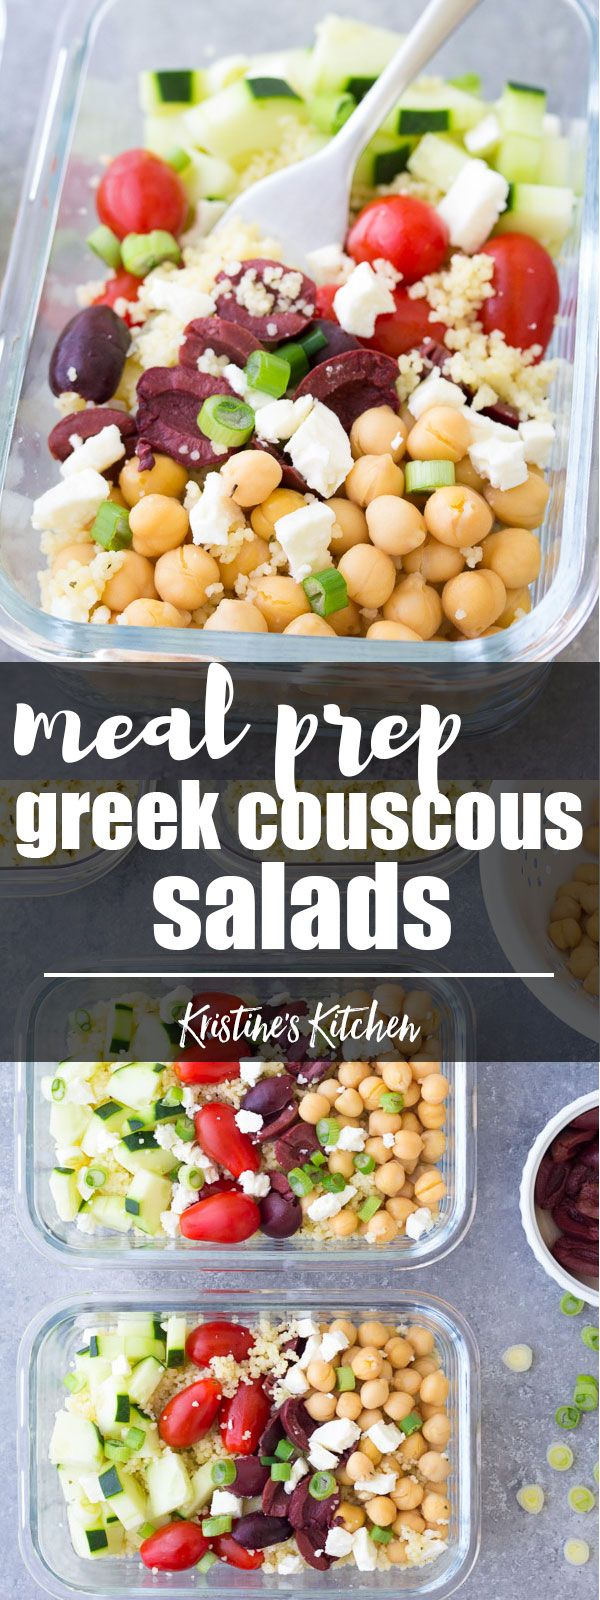 This Meal Prep Greek Couscous Salad is a healthy, vegetarian make ahead lunch. These lunch bowls are filled with healthy vegetables and chickpeas add protein! You can also serve this as a side salad at a BBQ. #mealprep #foodprep #lunch #healthylunch #healthyeating #chickpea #salad